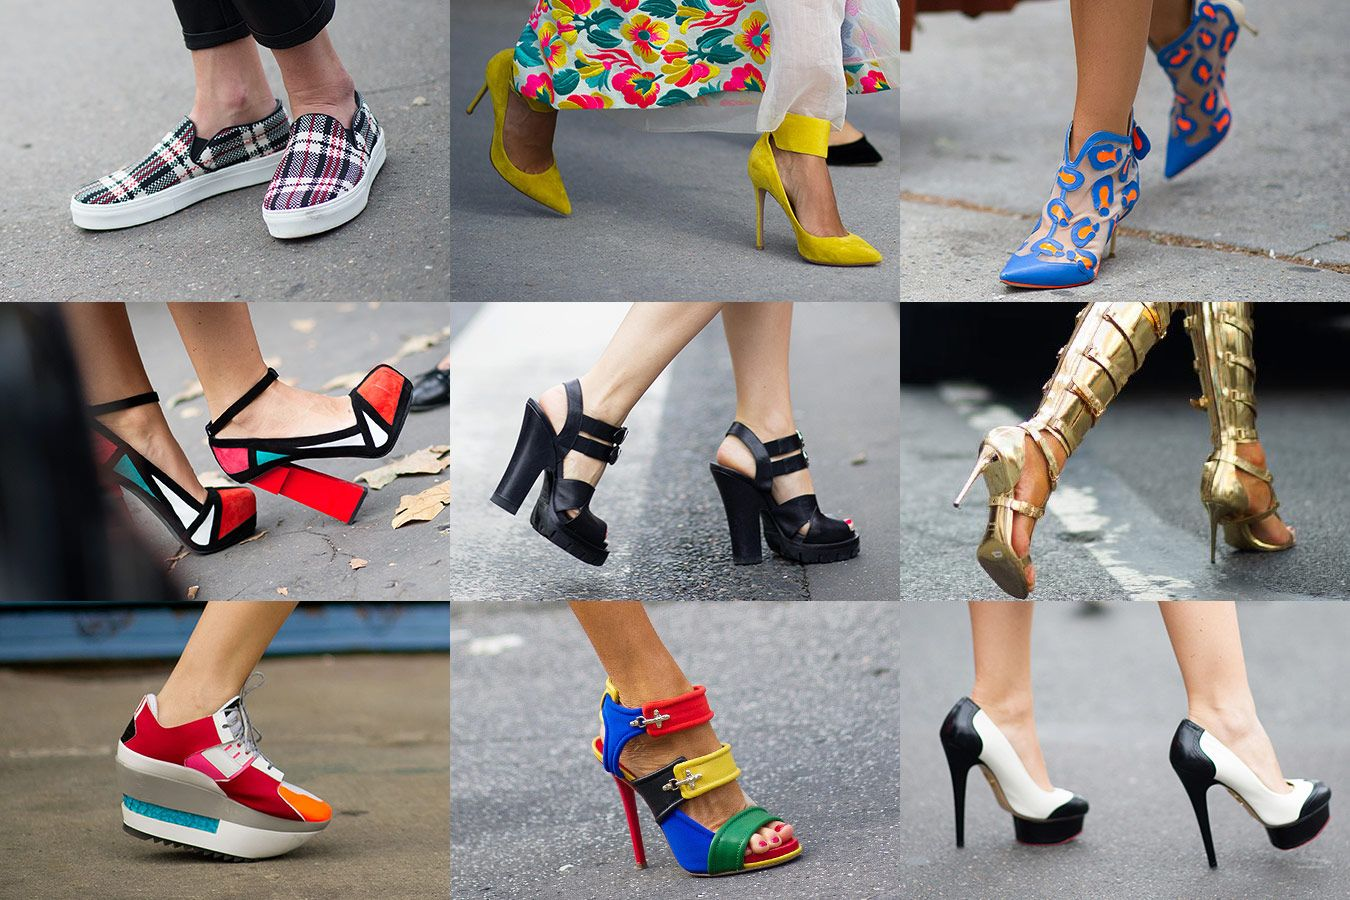 UK Ladies Fashion Blog: 4 Hottest Shoe Trends of 2014 for ...